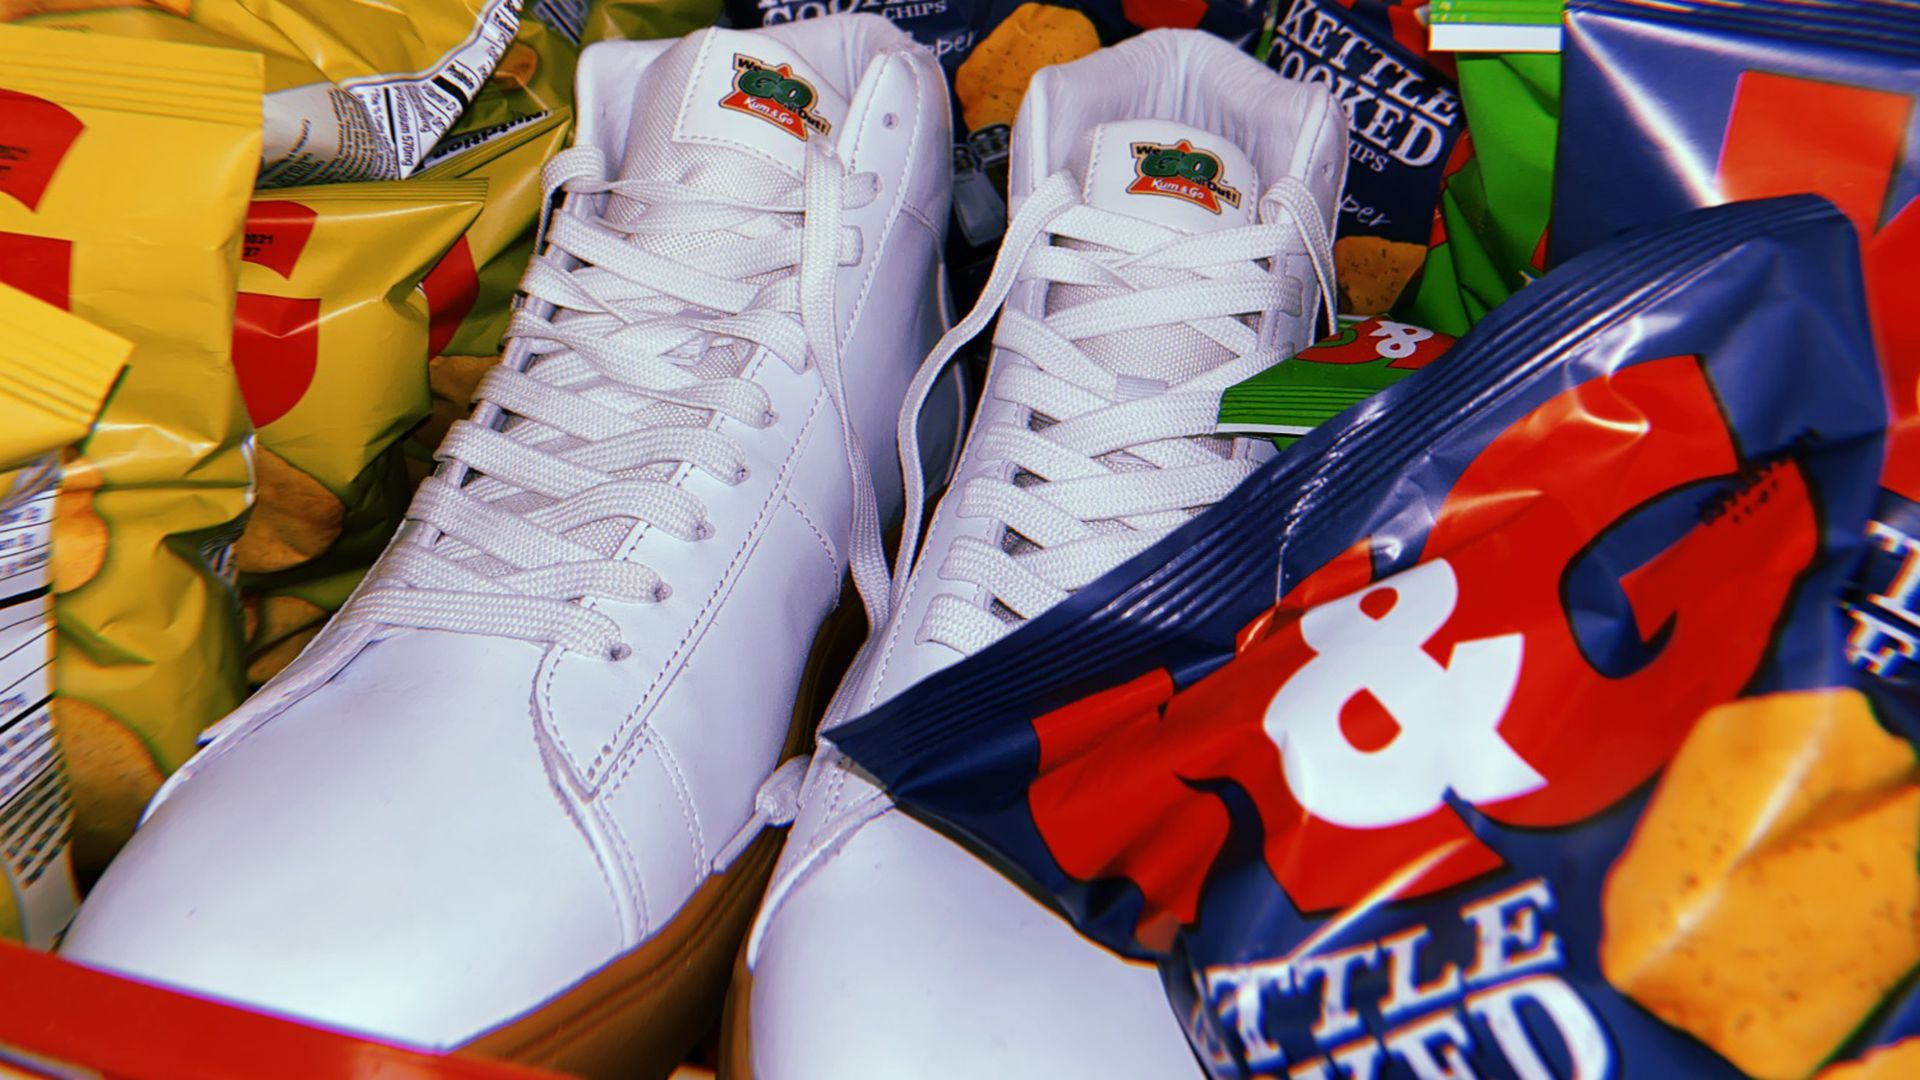 White sneakers surrounded by bags of chips